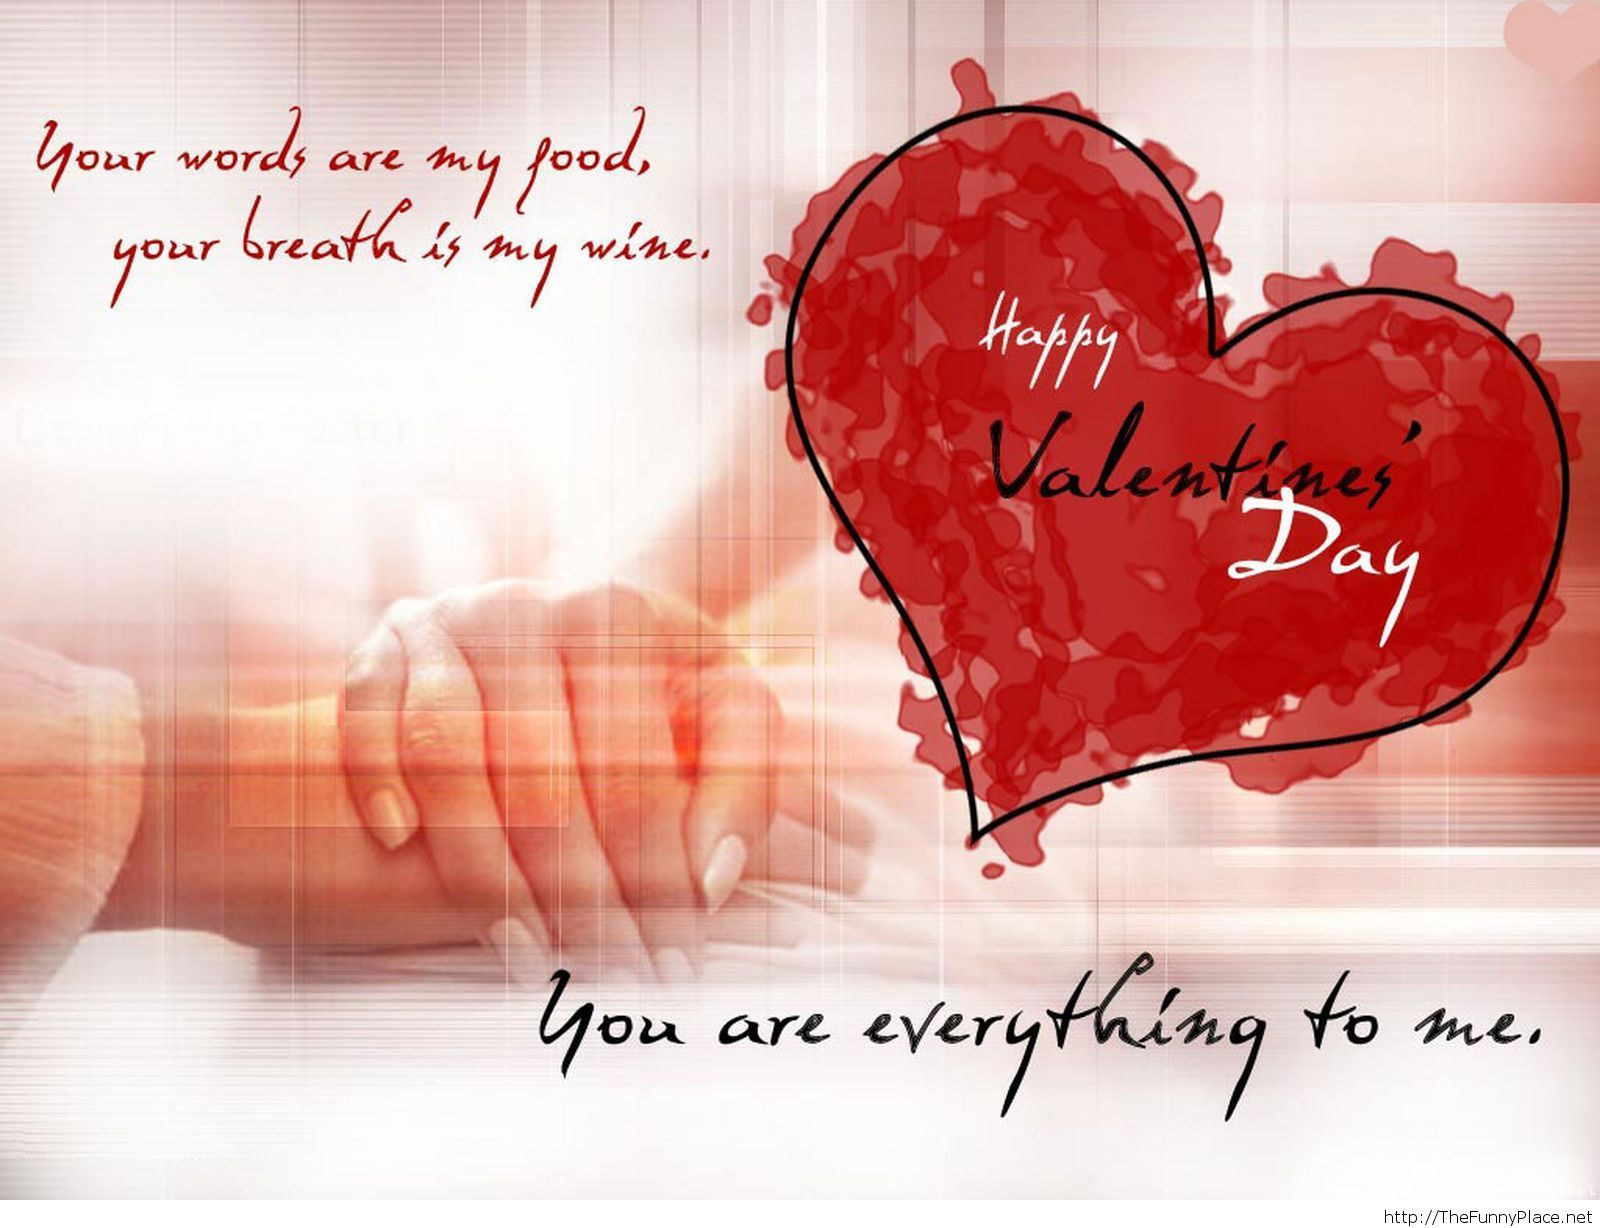 Love sayings for Valentine's Day